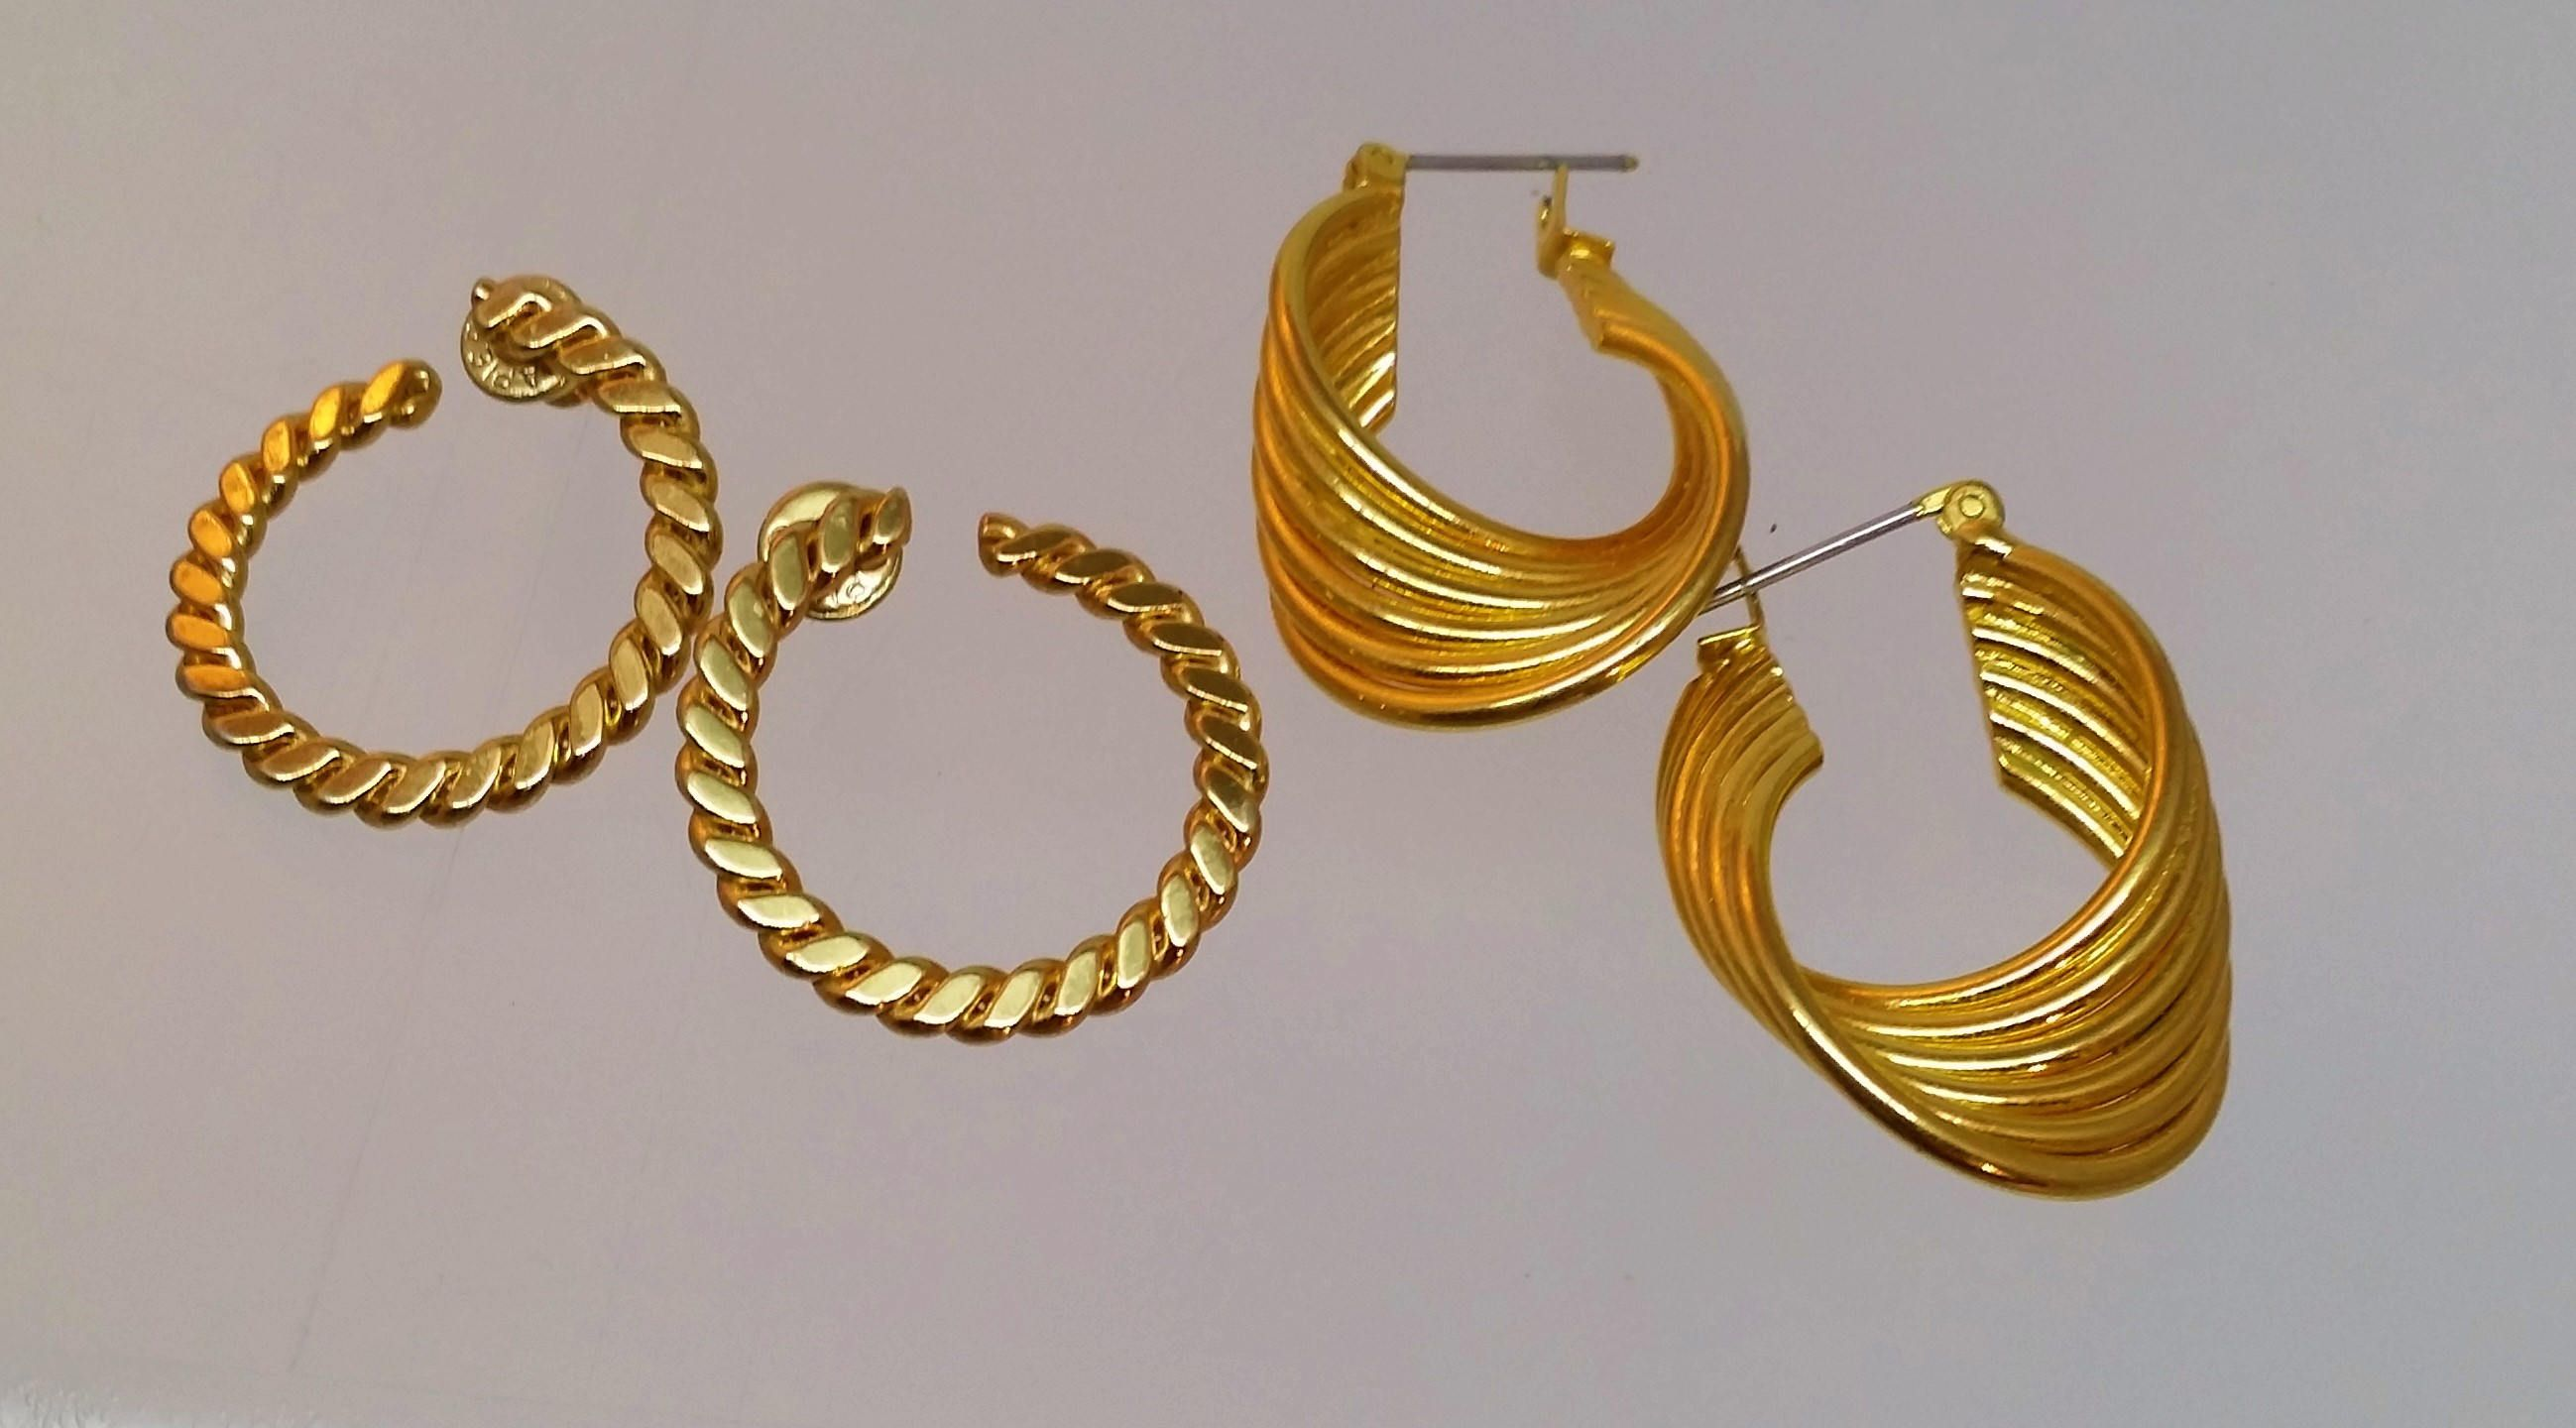 Napier Gold Hoop Earrings 2 Vintage Twisted Pierced Post Costume Jewelry Gifts